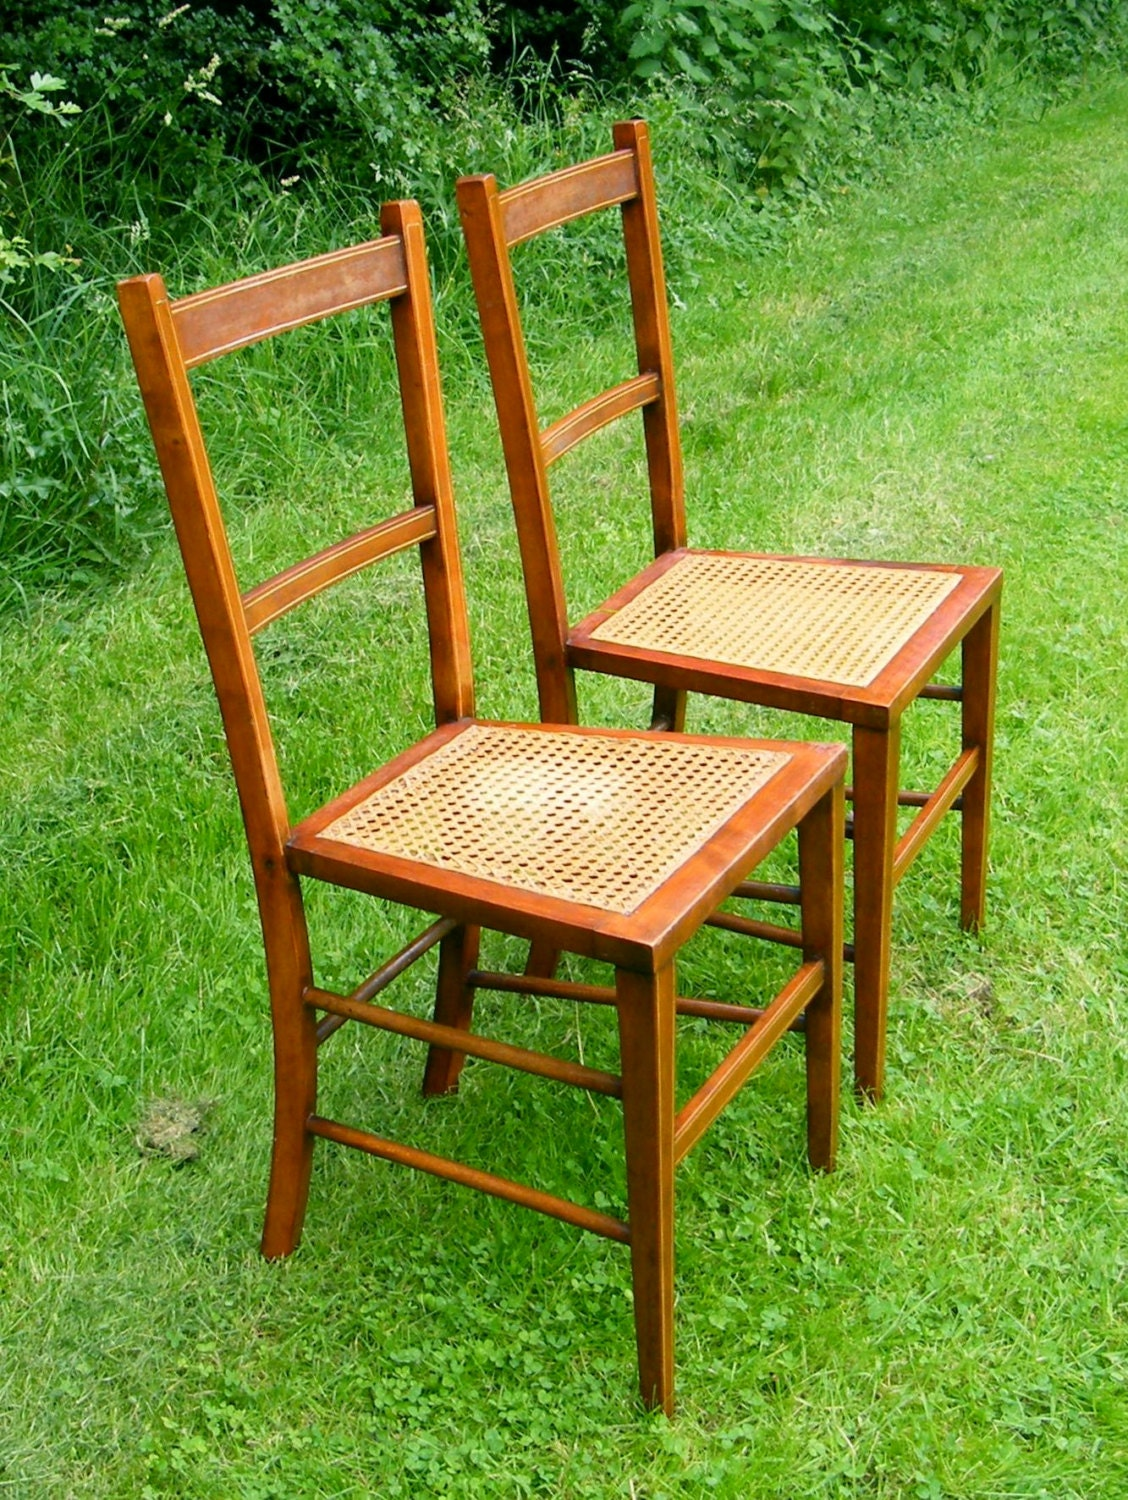 2 Small Vintage Chairs 2 Old Chairs Antique kitchen Chairs Little Bedroom Chairs